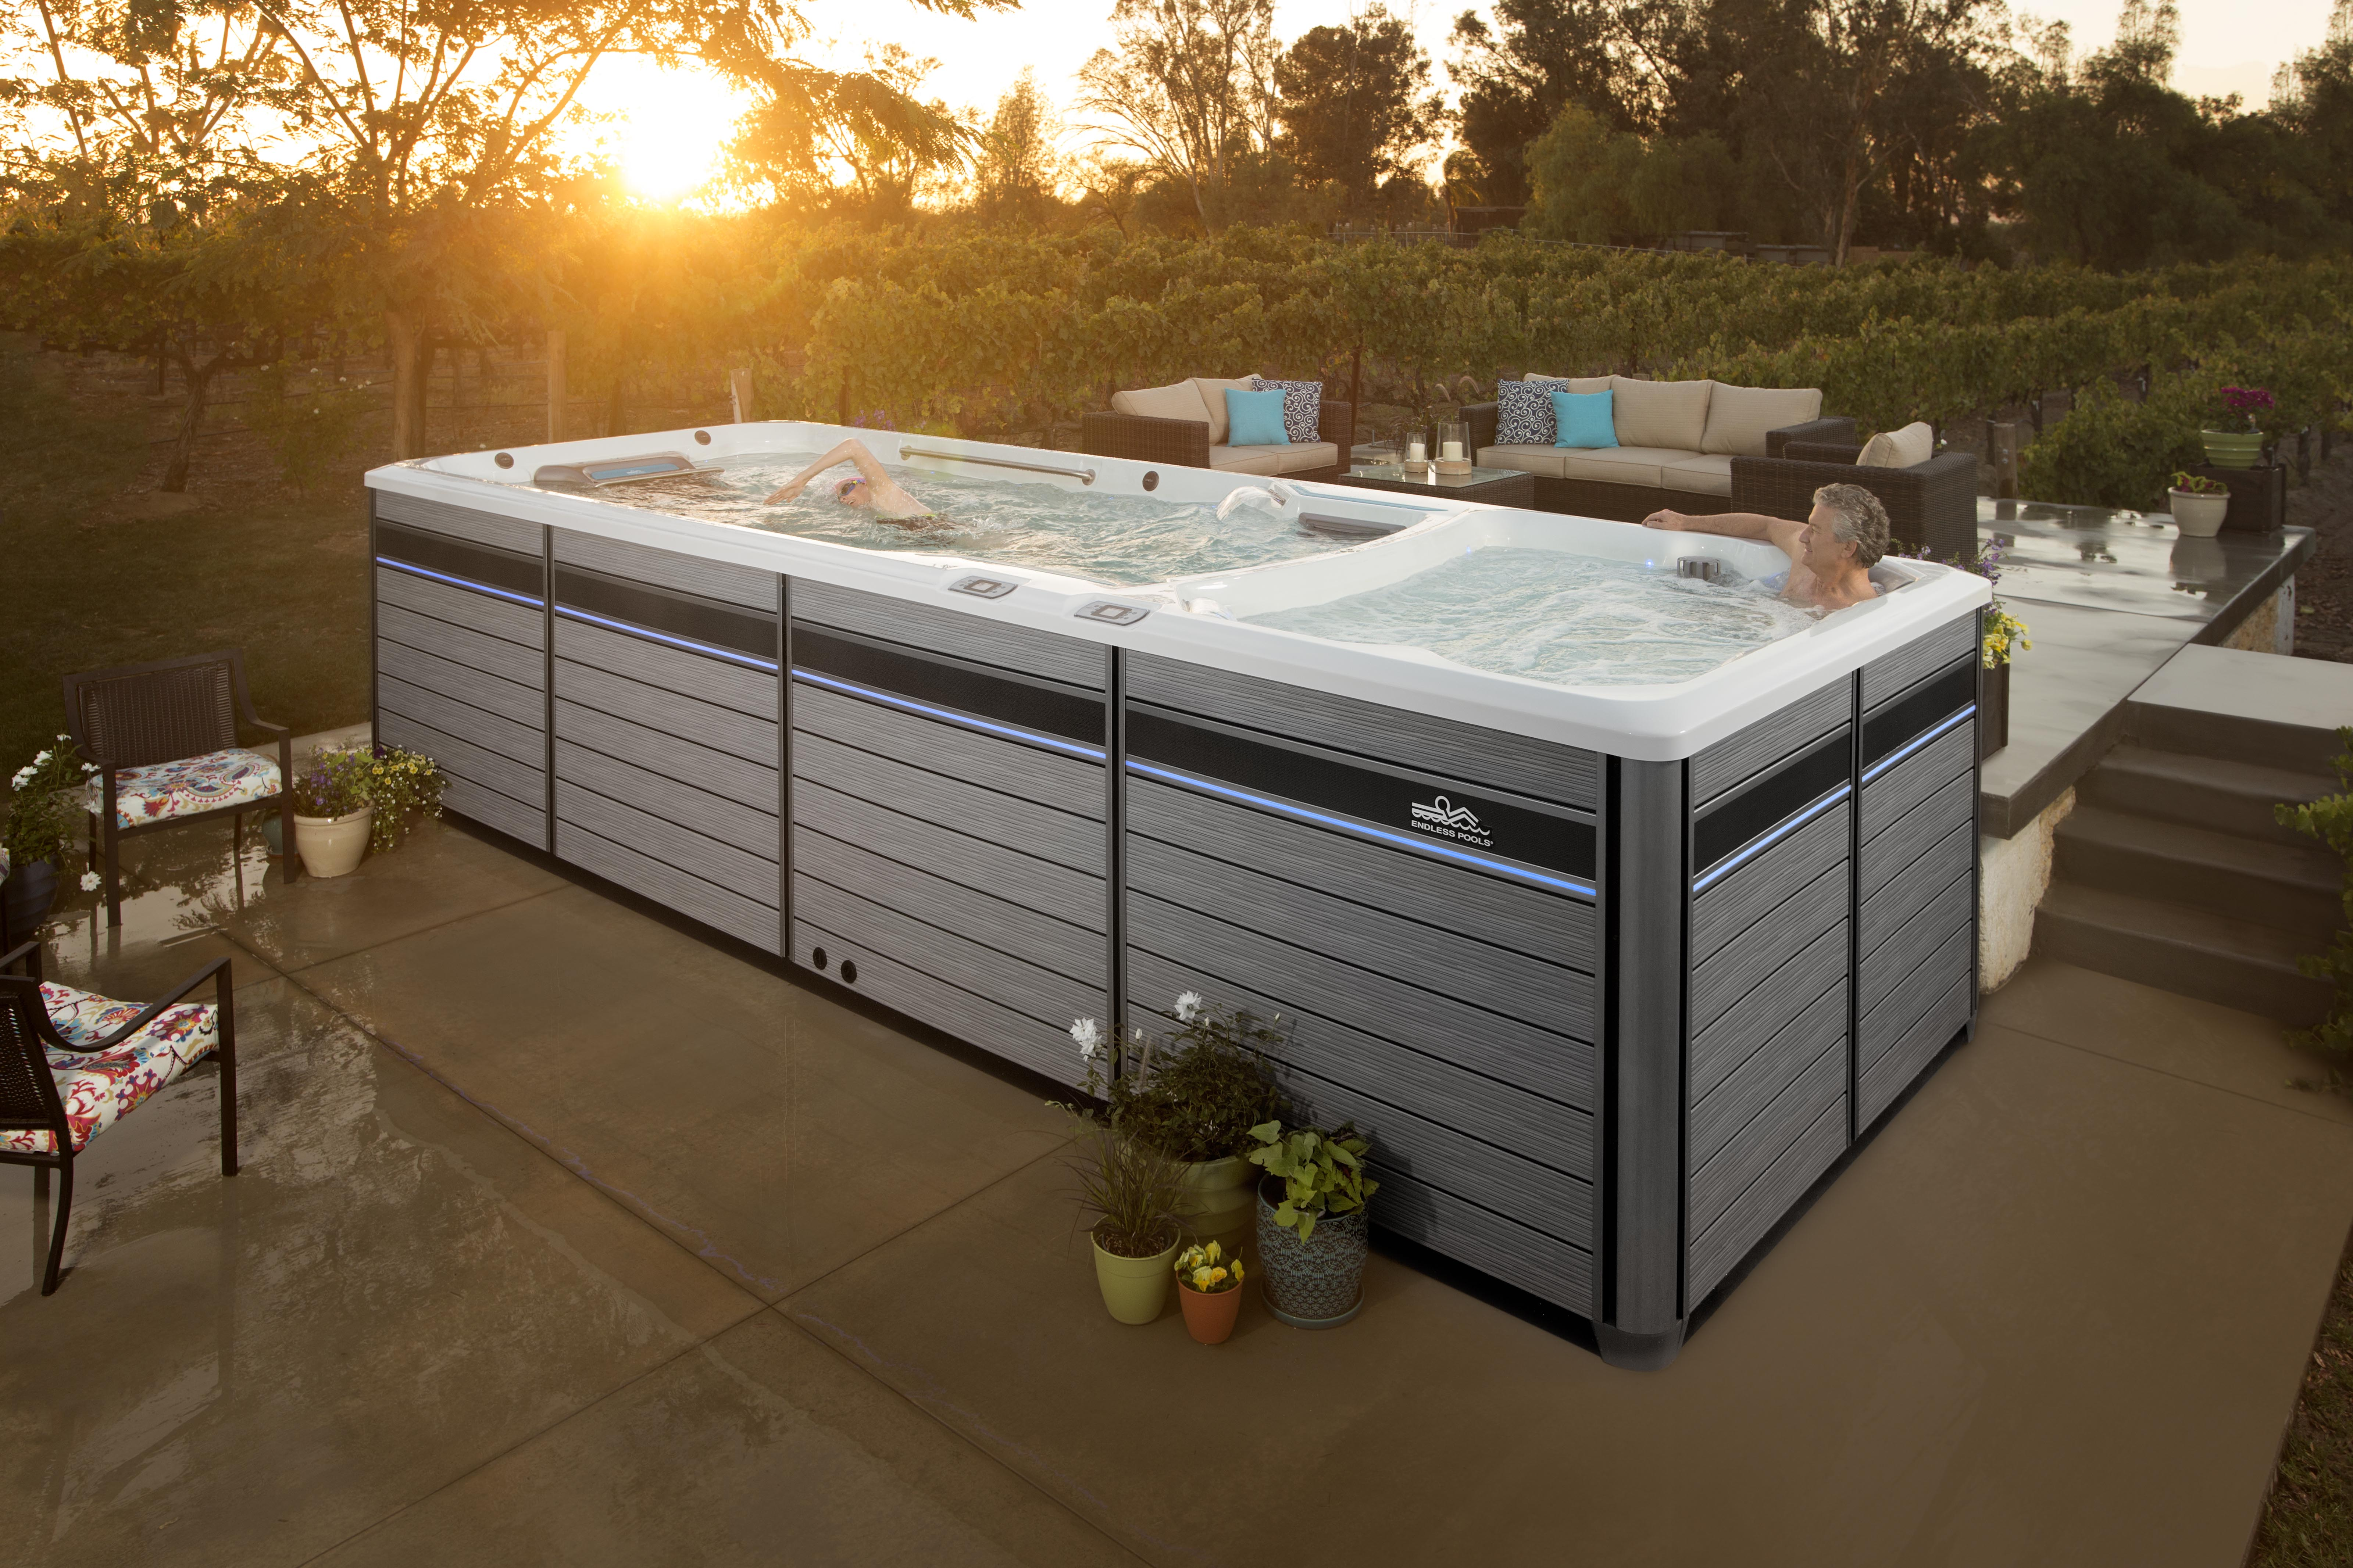 Swim Spas: The All-Inclusive Hot Tub Choice